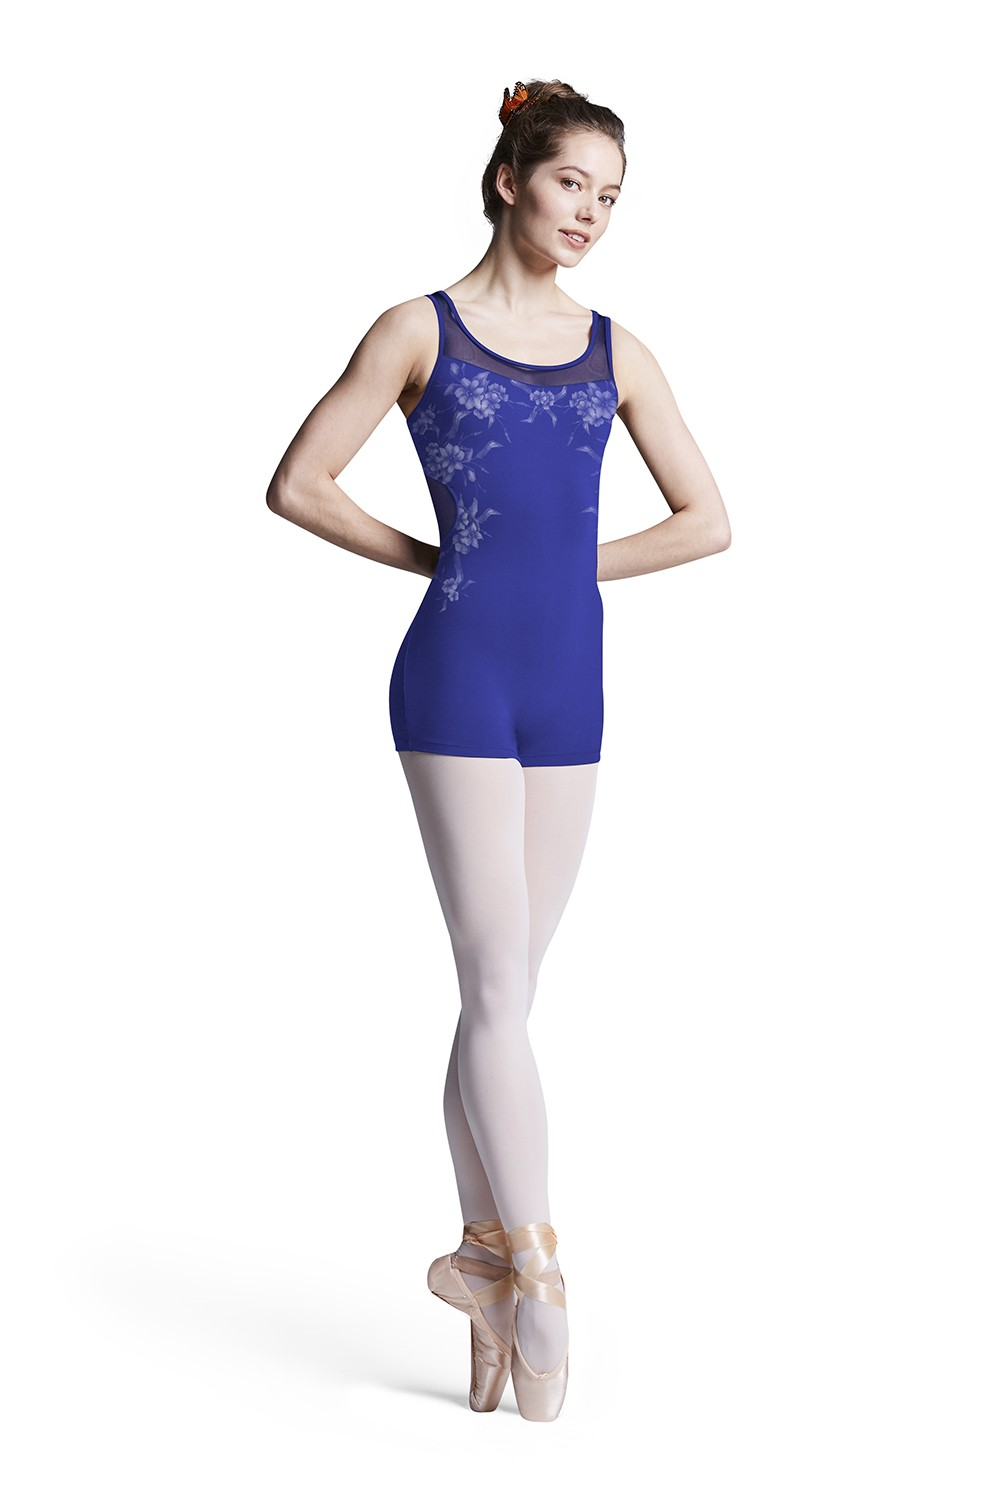 Caroline Women's Dance Leotards